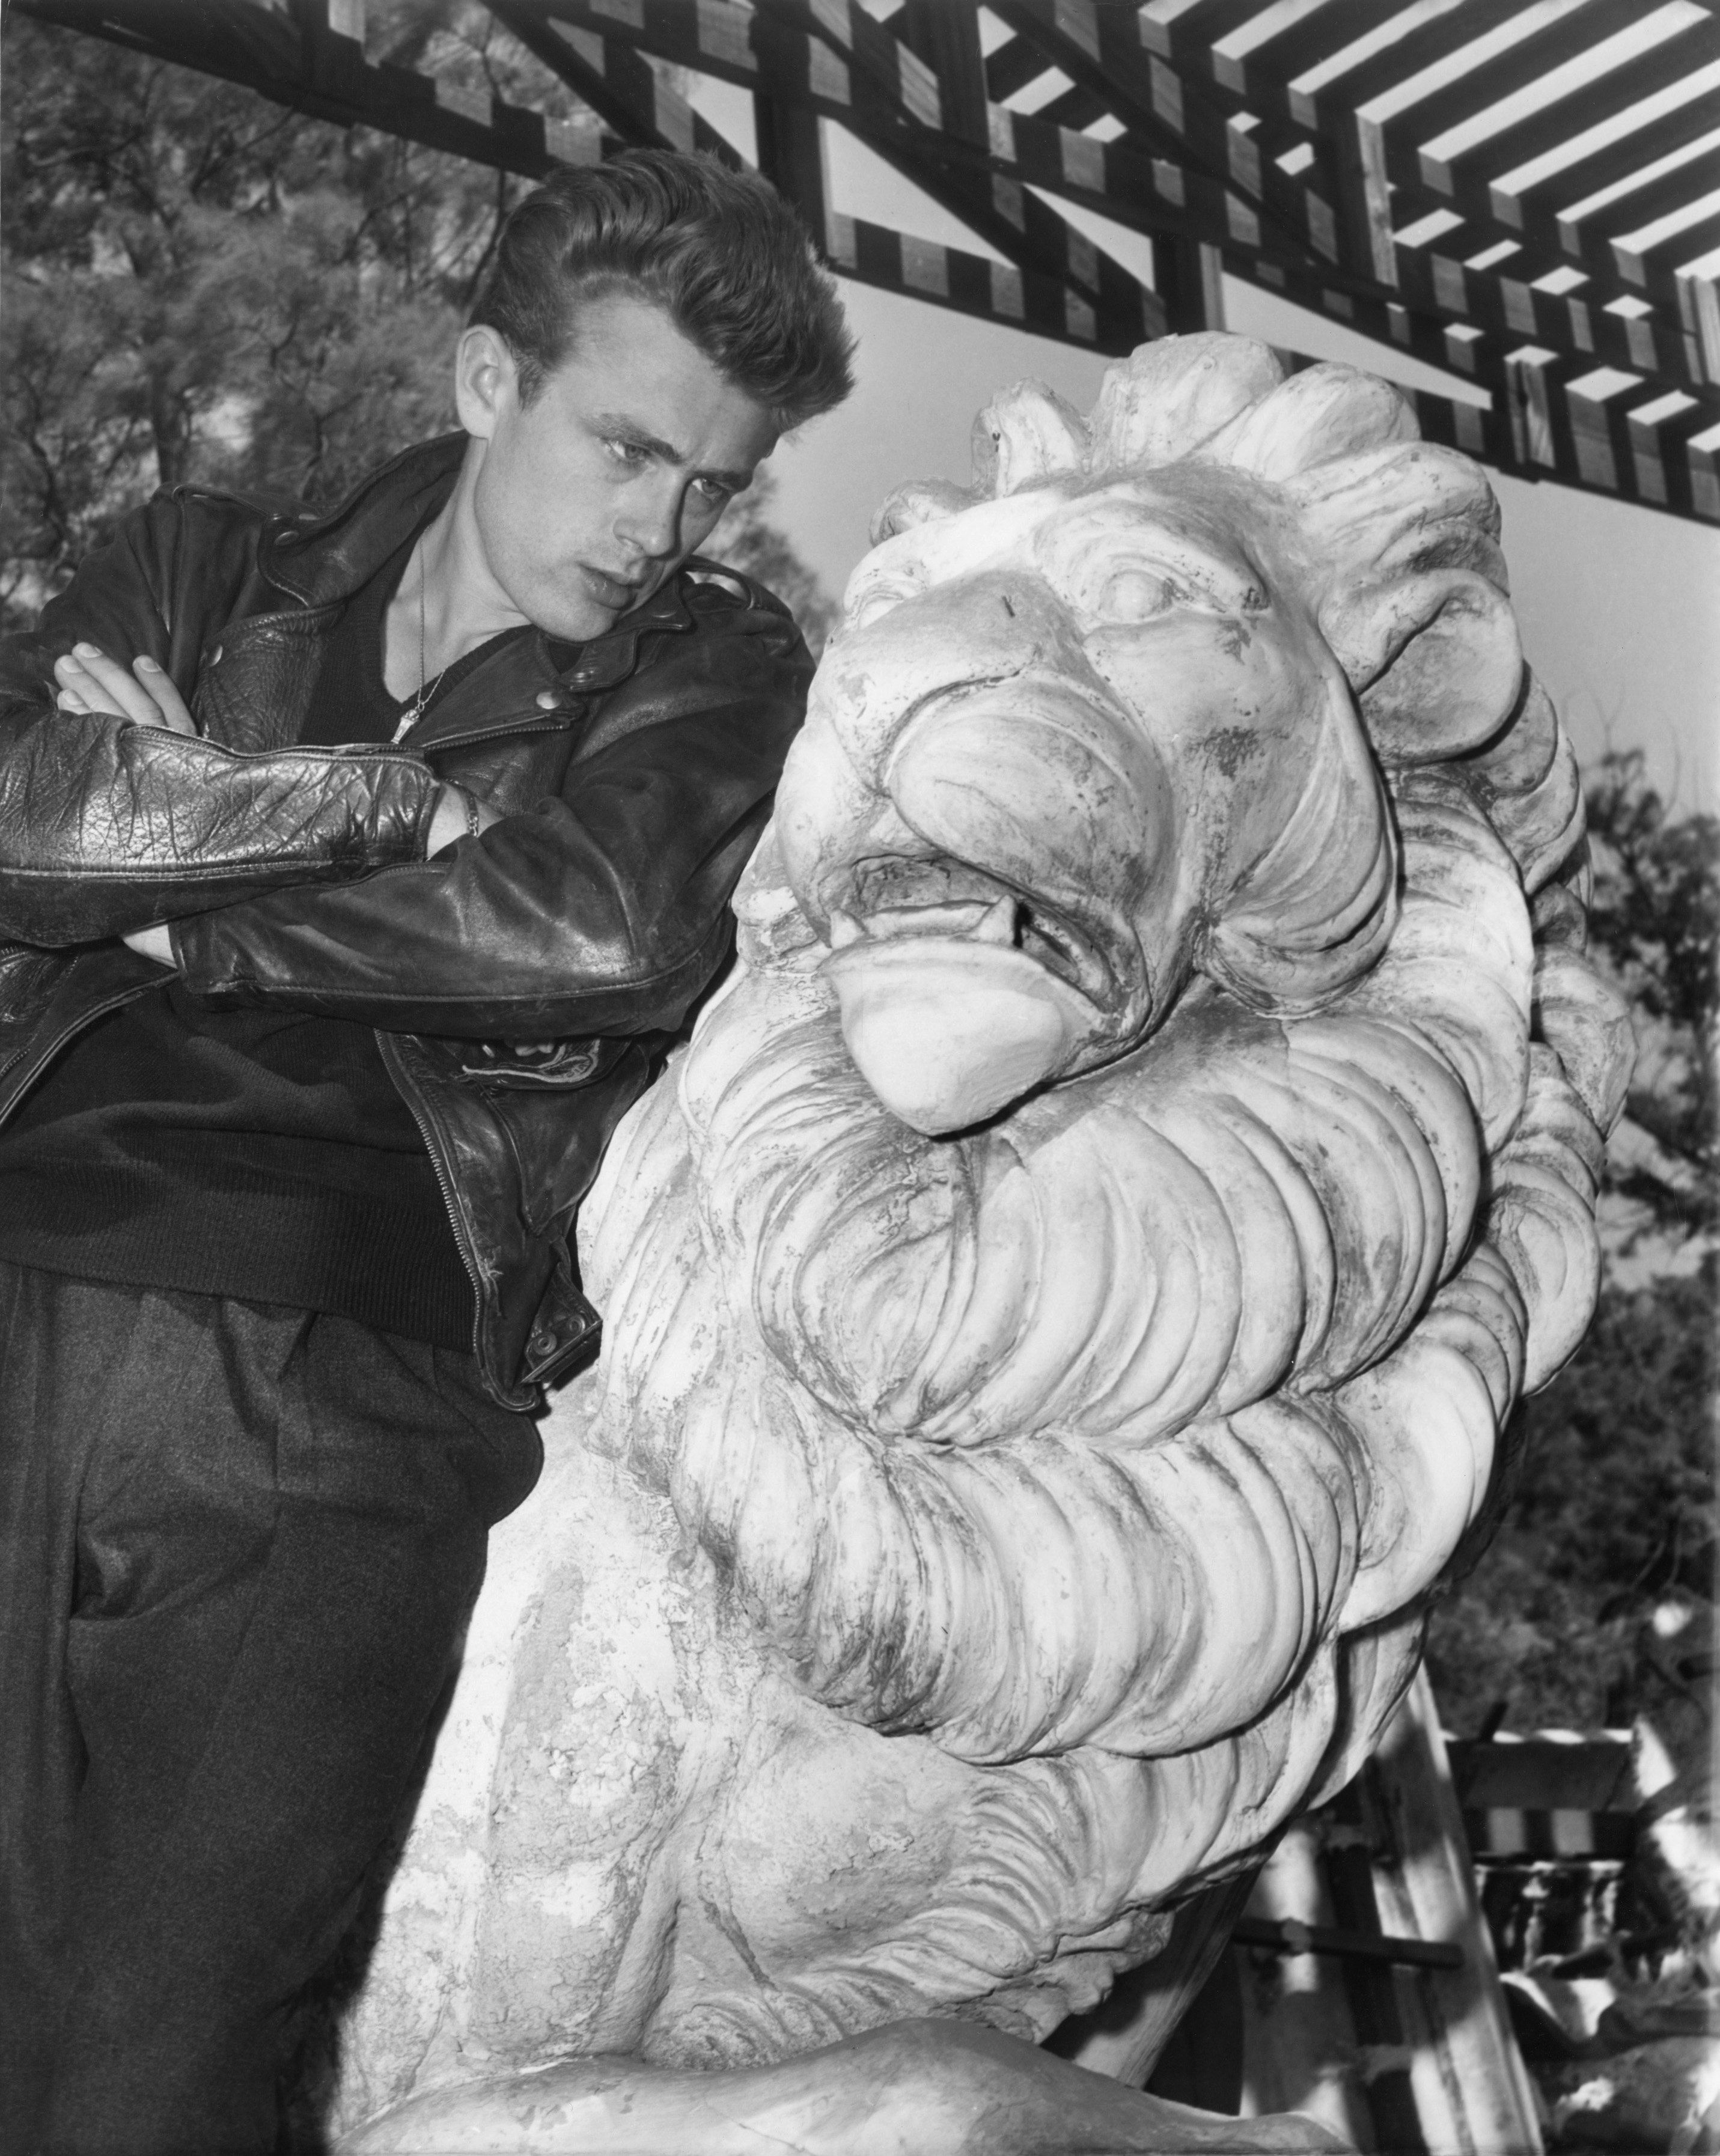 actor-james-dean-poses-for-a-photo-on-the-set-of-the-warner-news-photo-1573155579.jpg